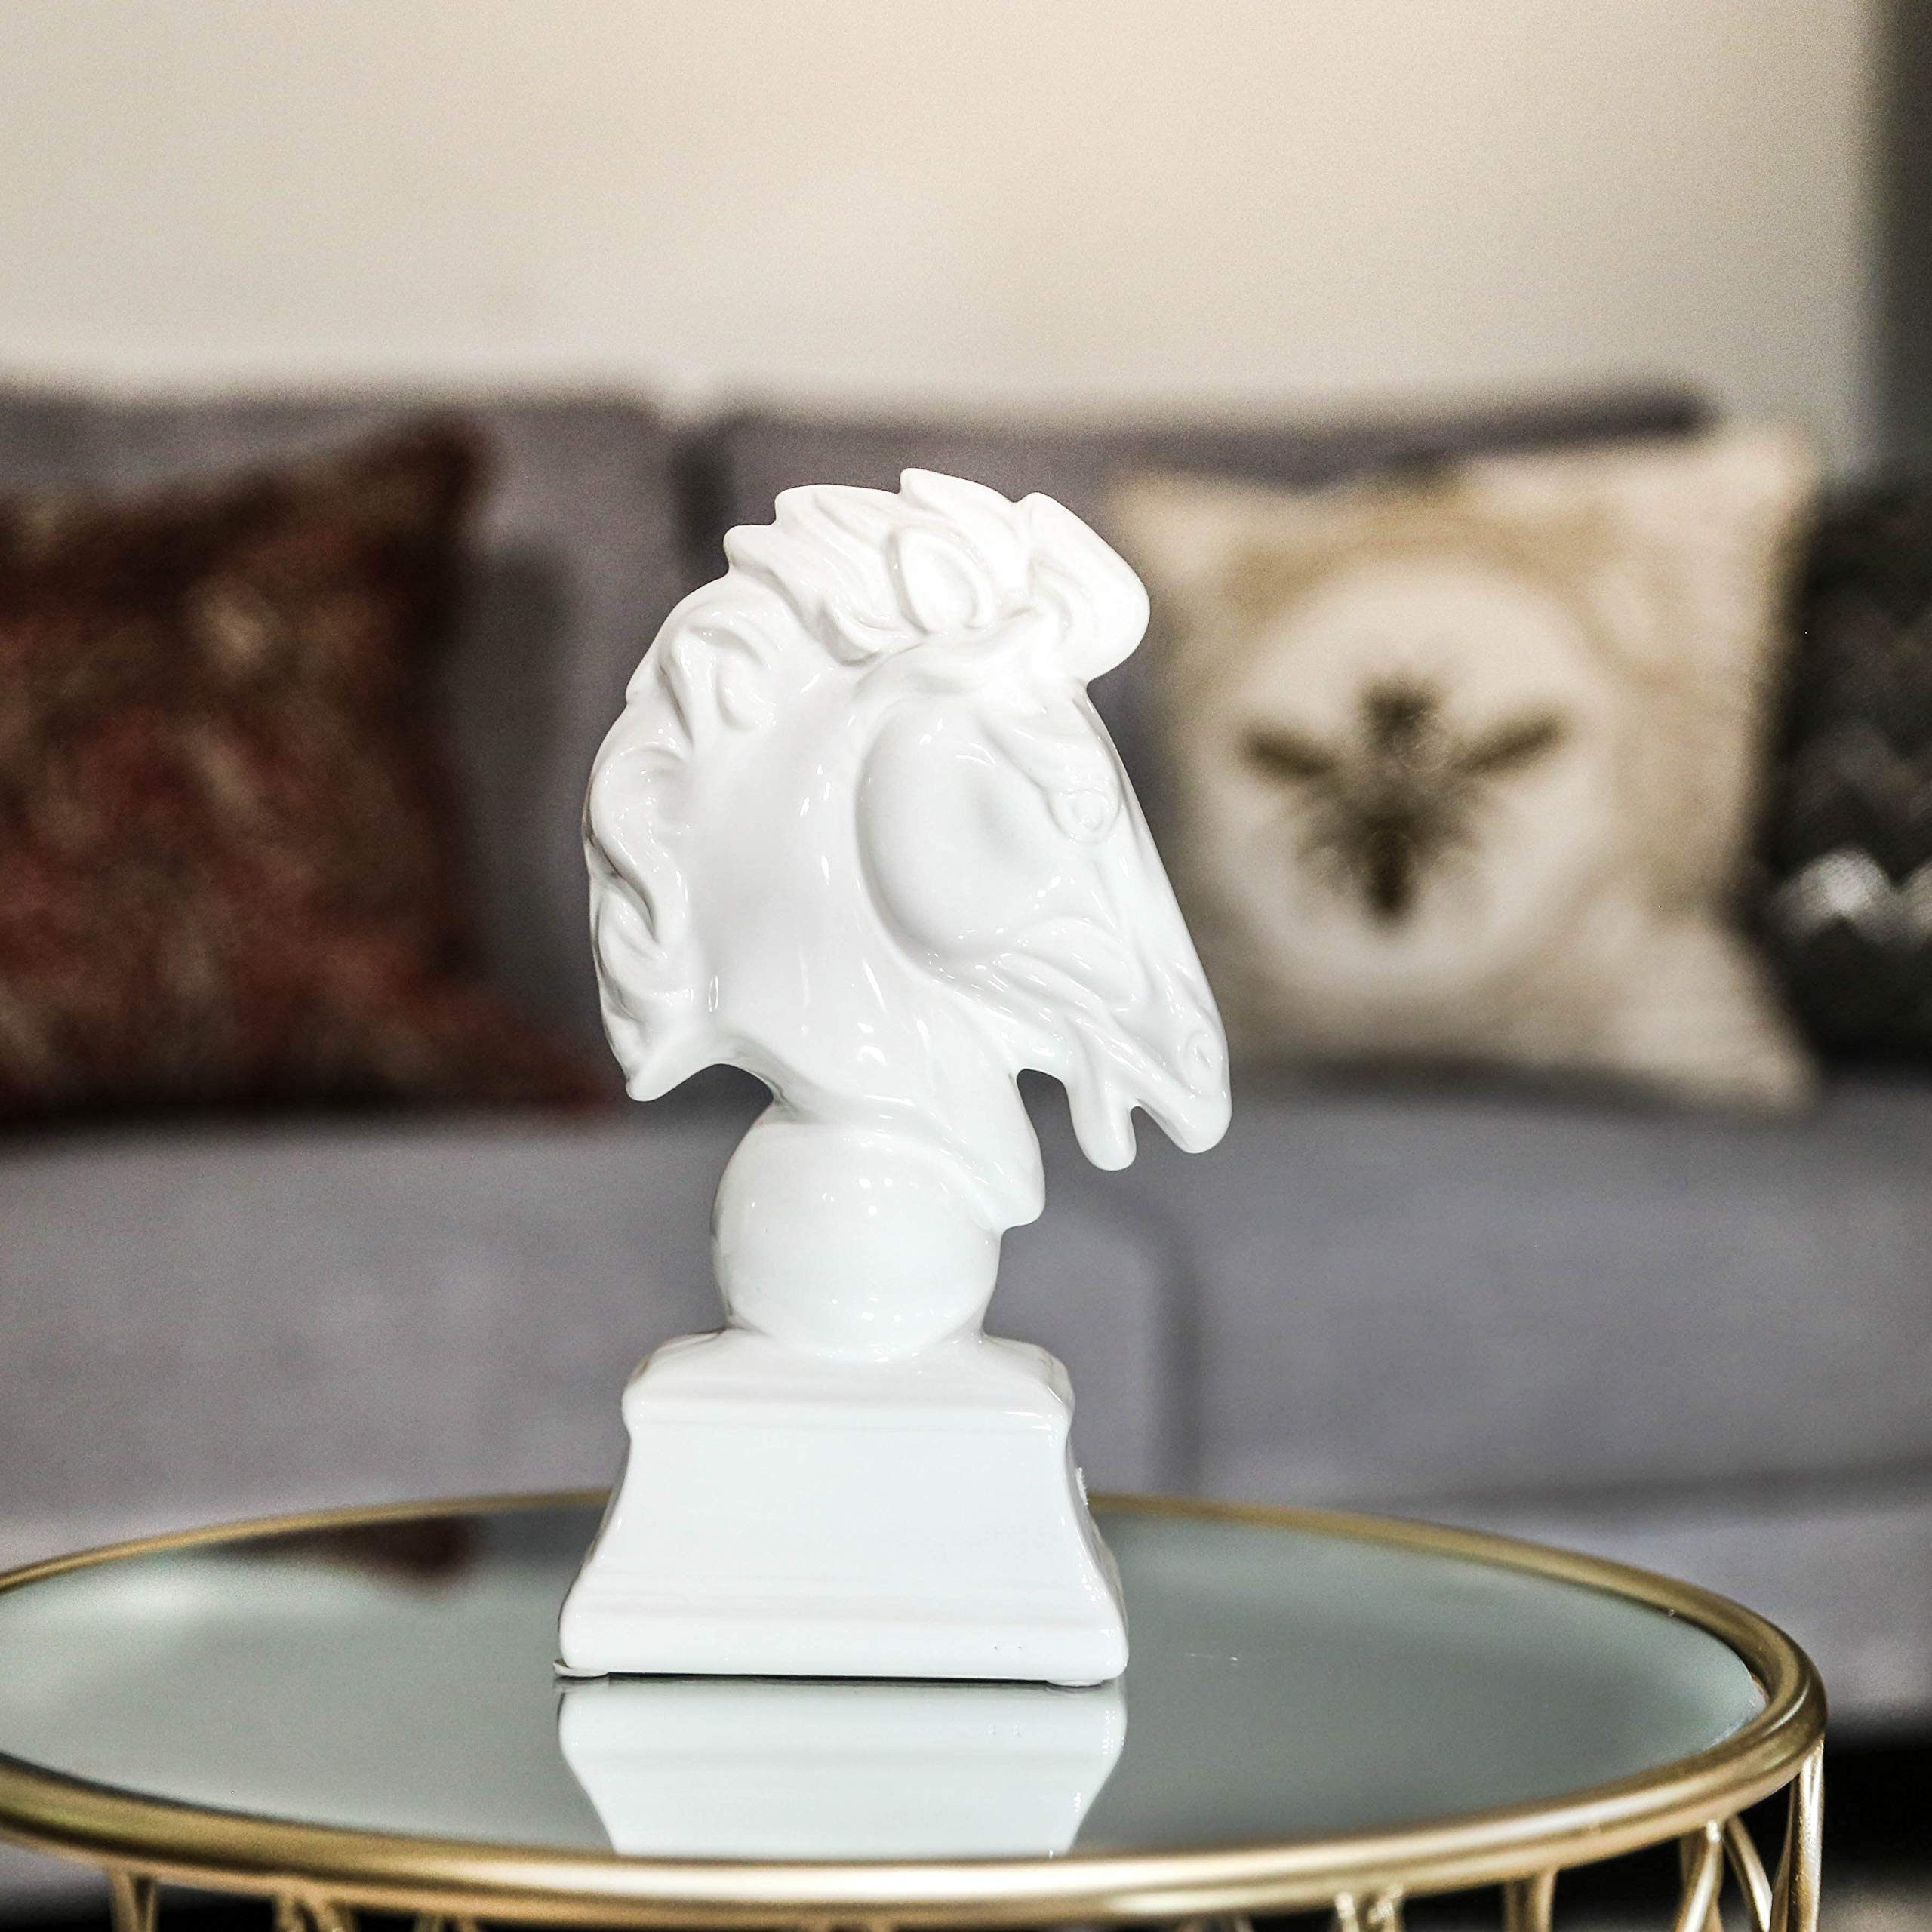 Urban Trends Porcelain Horse Head on Trapezoidal Pedestal Gloss Finish, White by Urban Trends